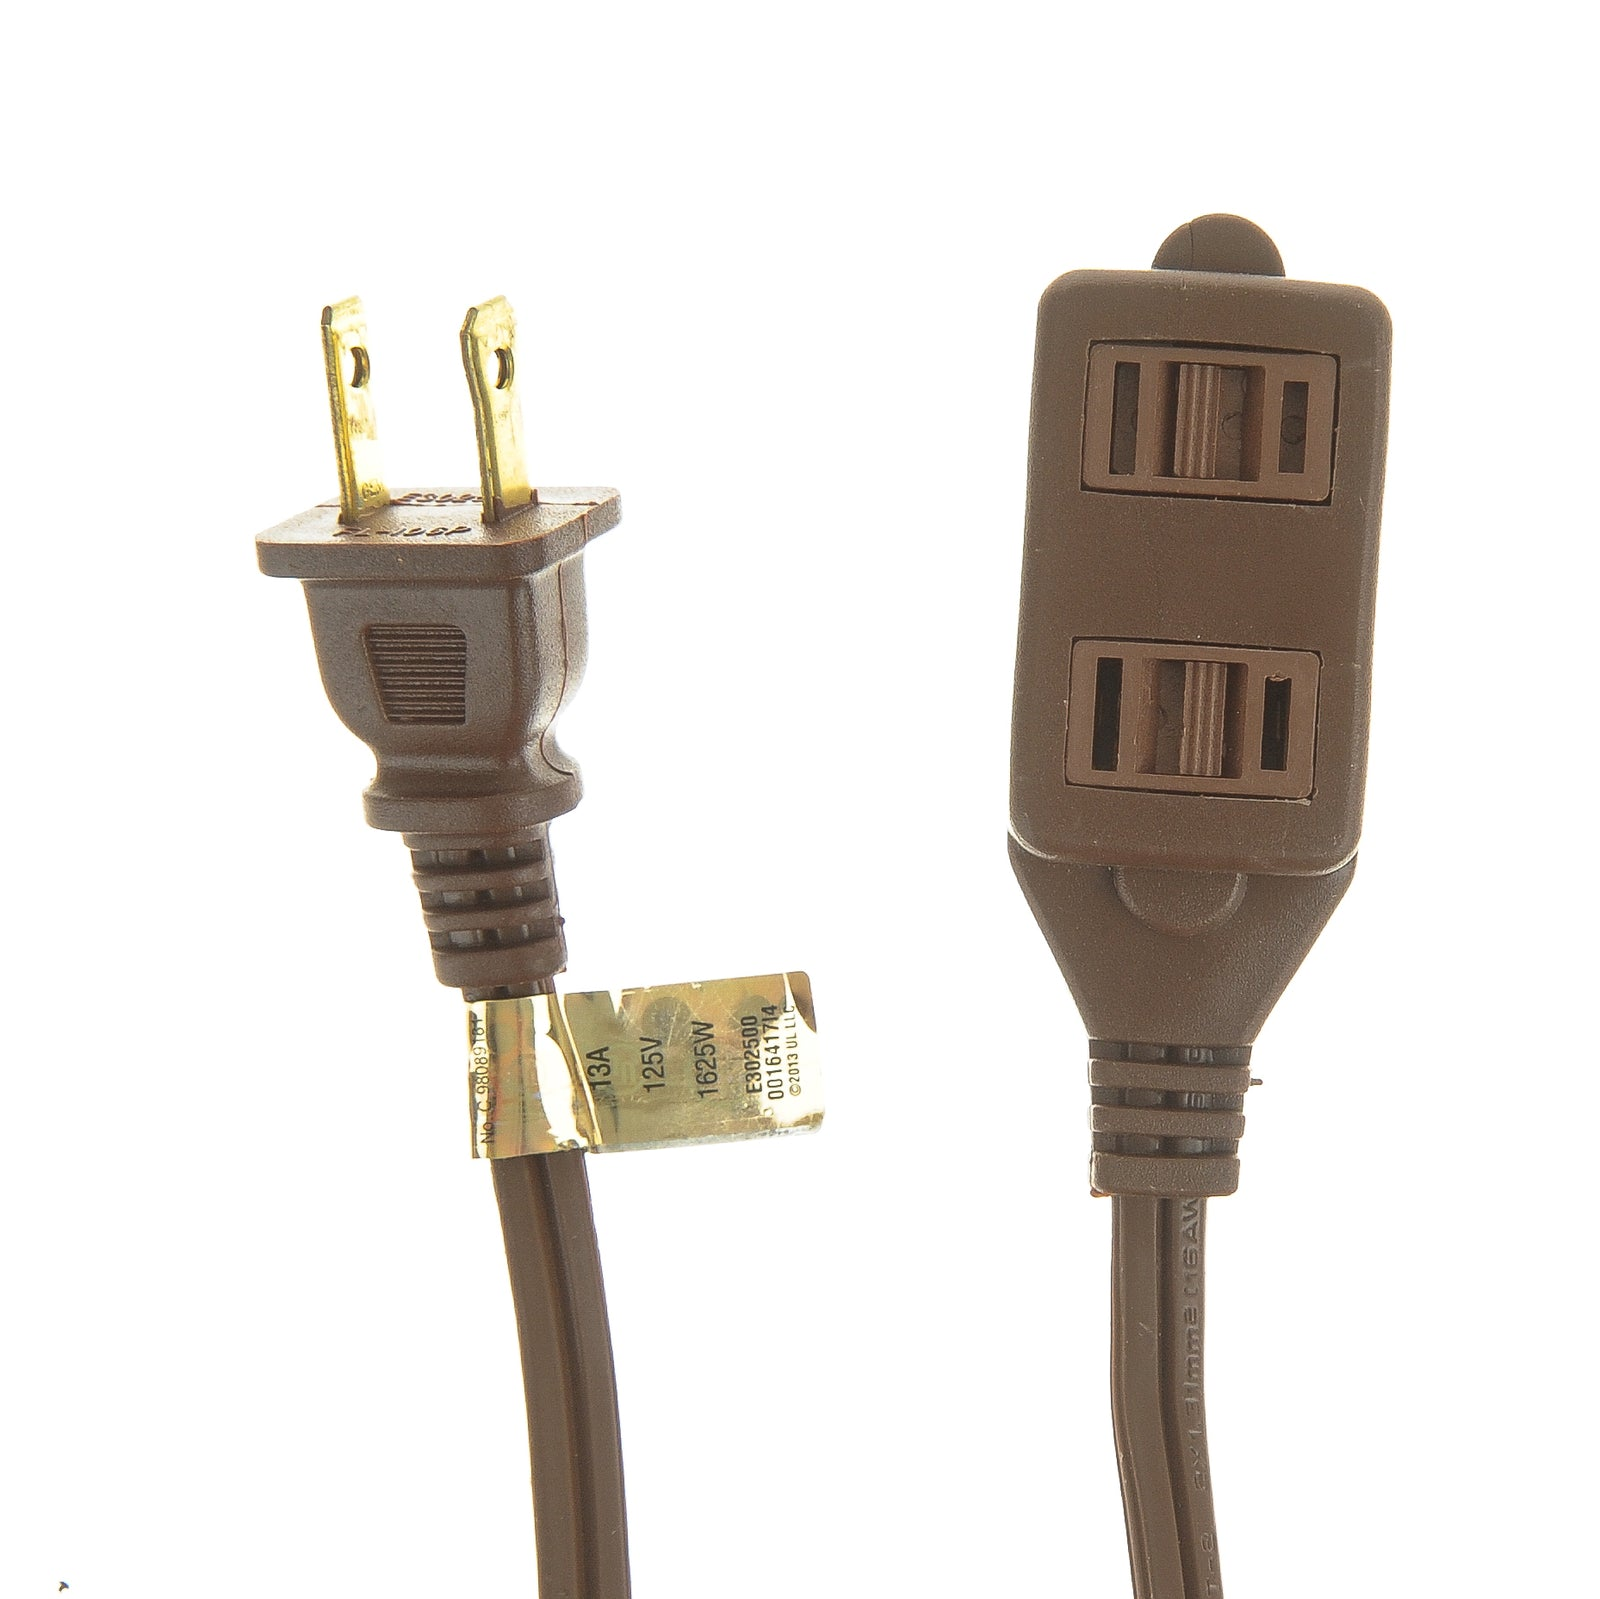 Viasonic Indoor Extension Cord - 16 Gauge - 2 Prong - 3-Outlet - UL-Listed